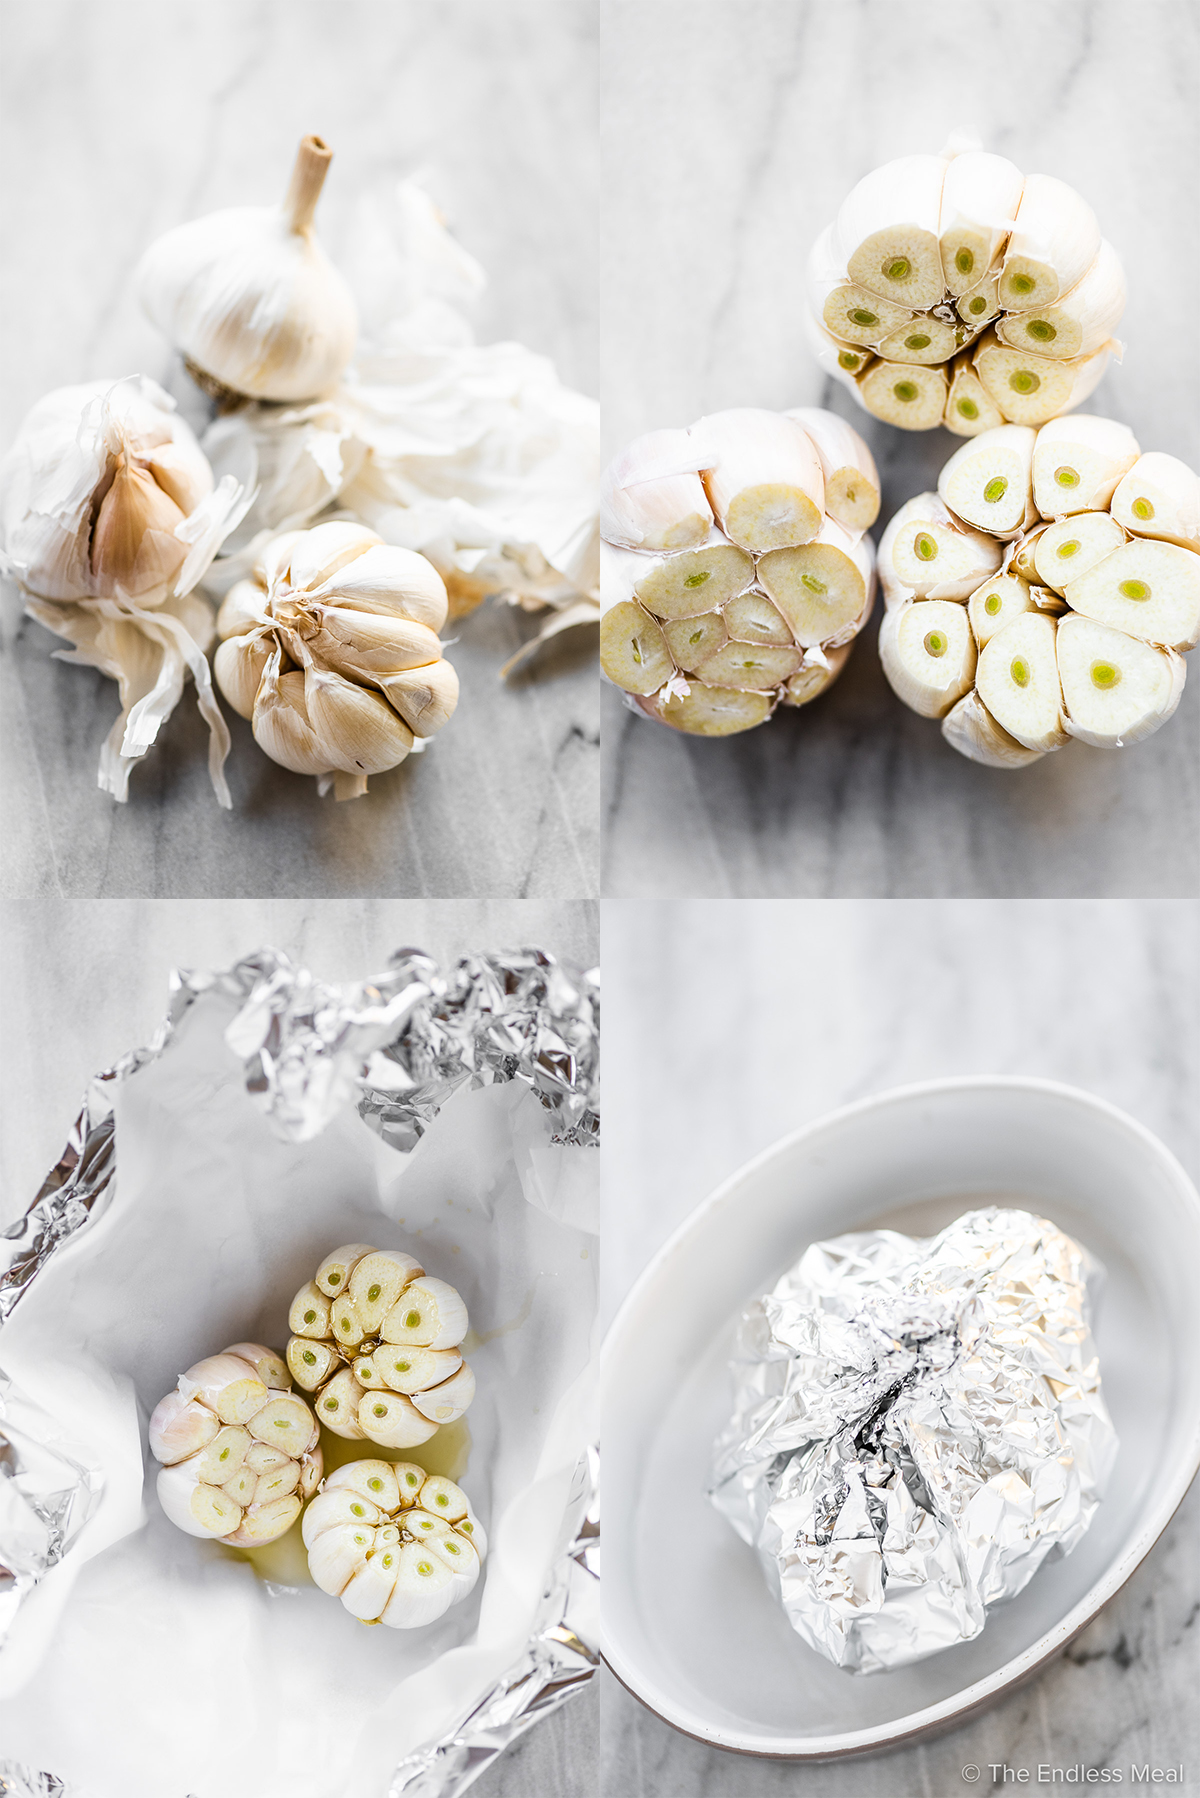 4 images showing how to roast garlic.